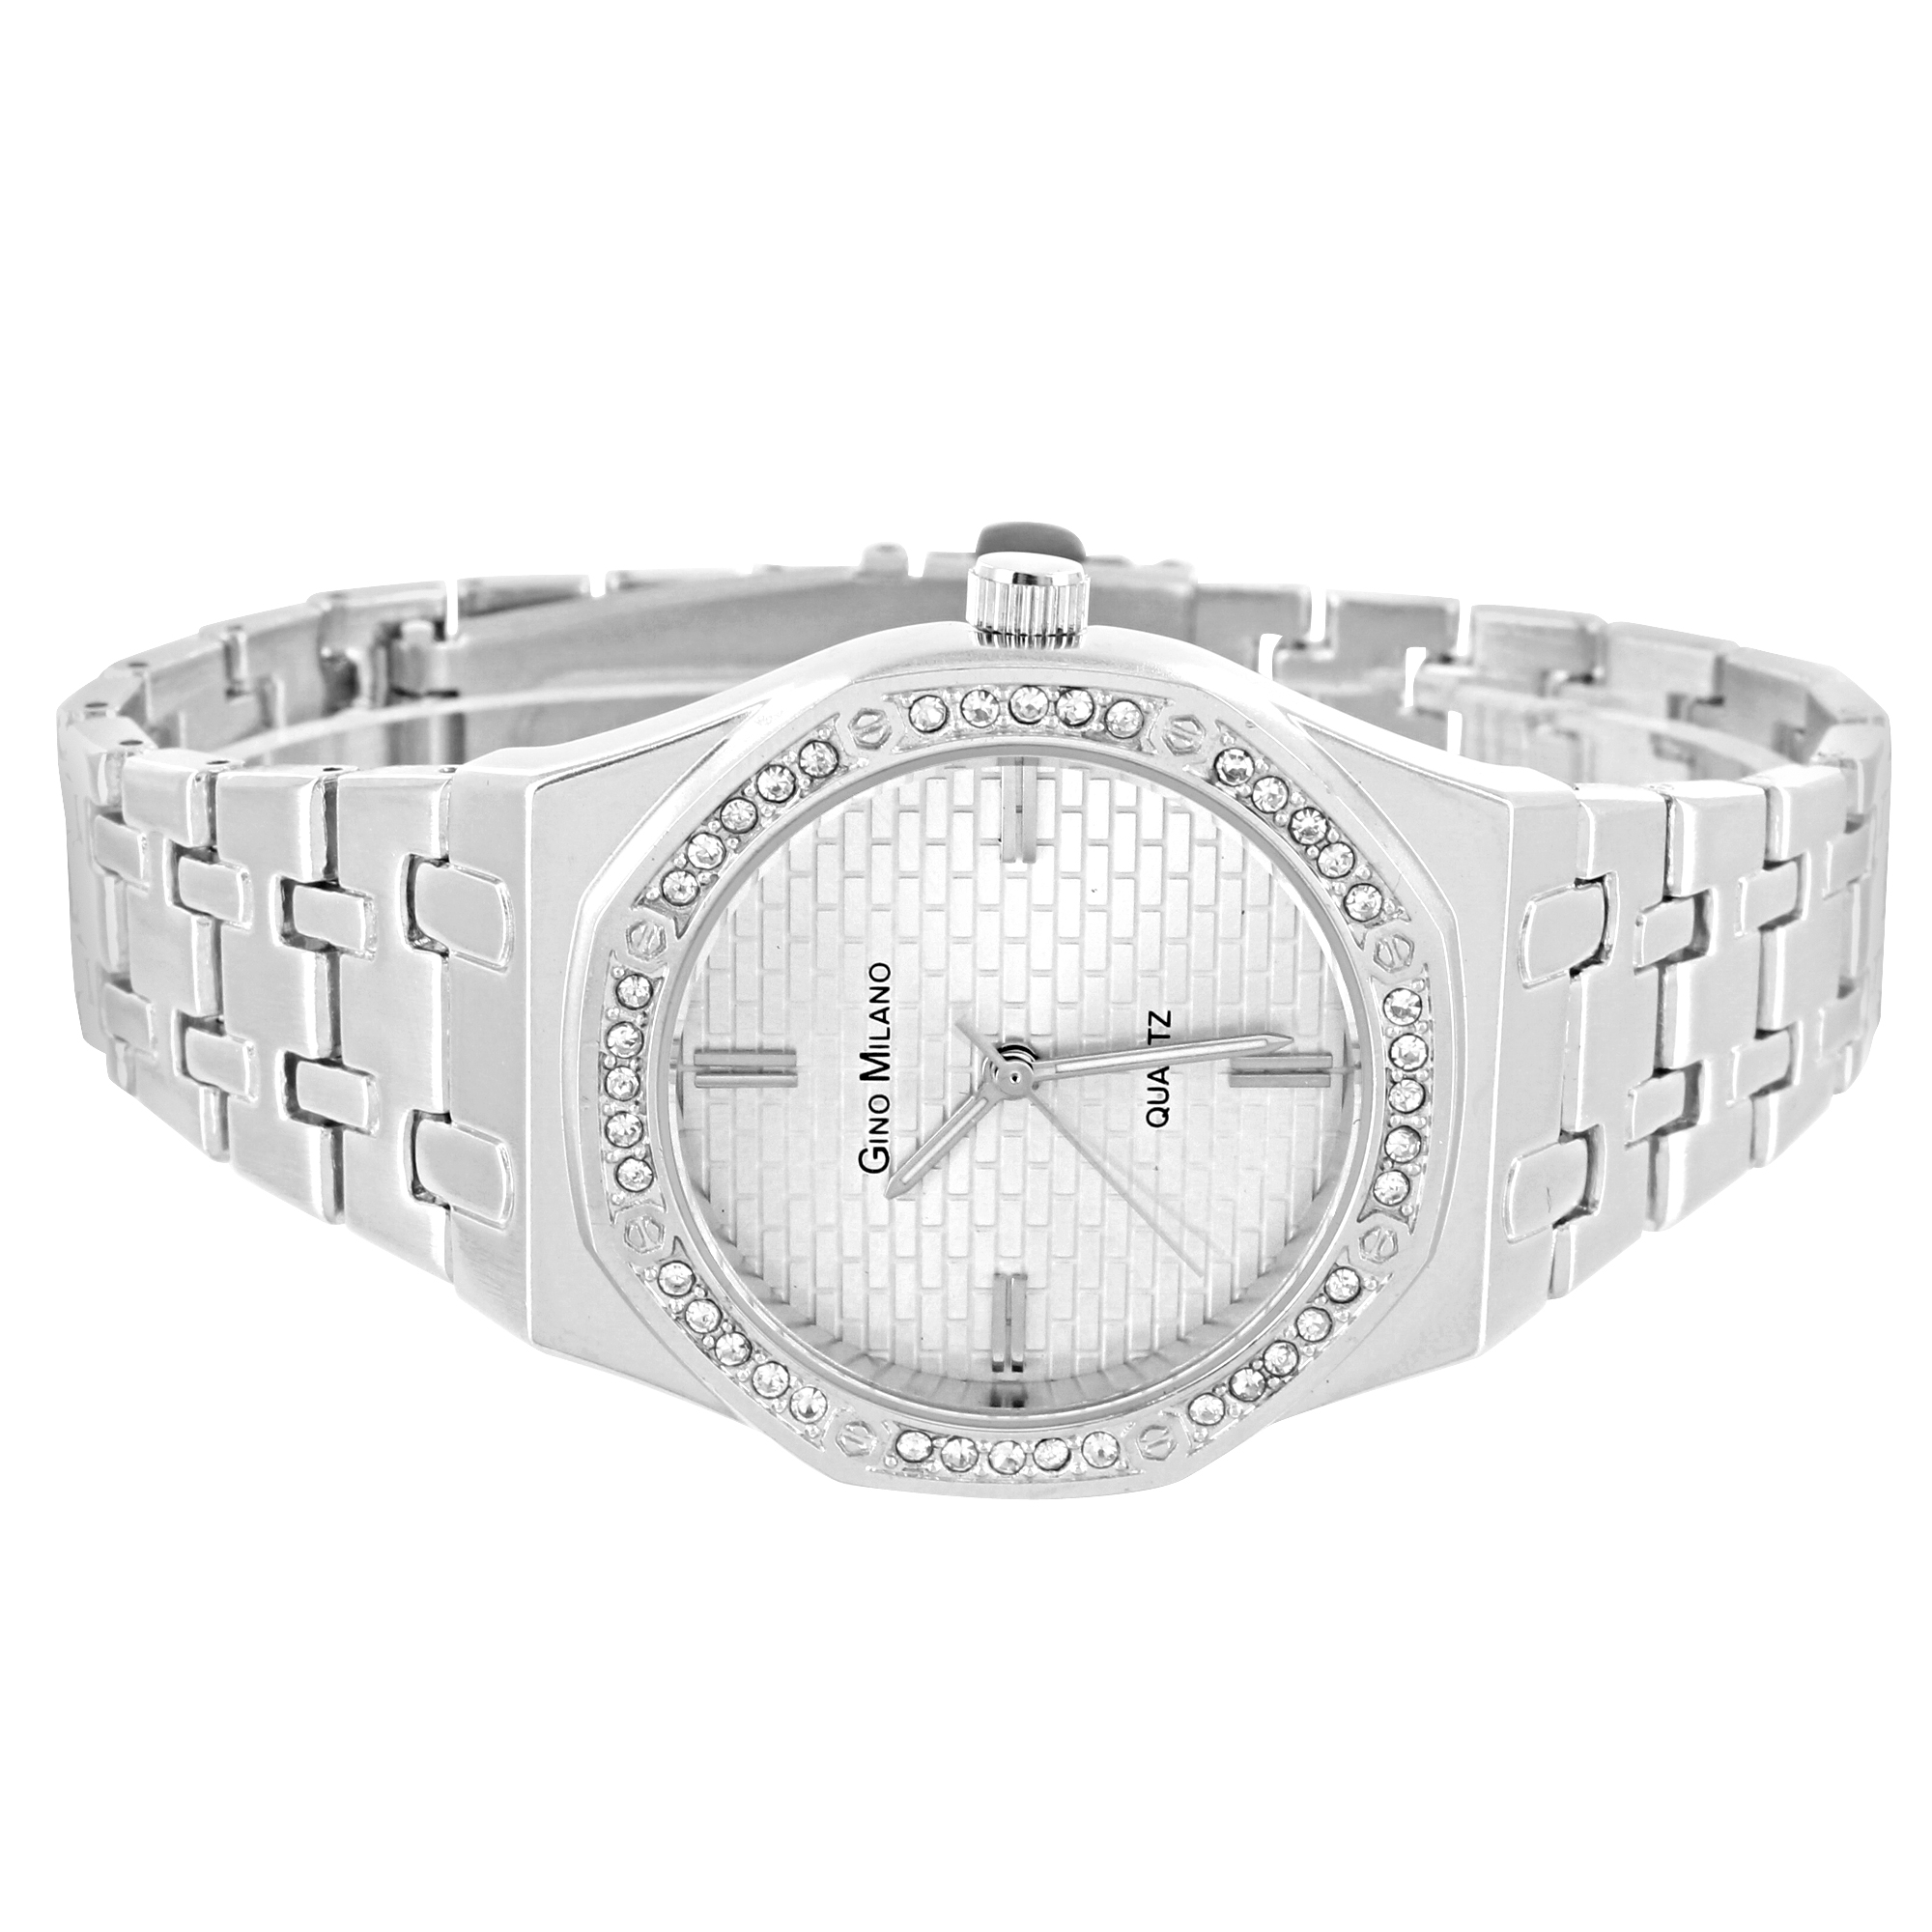 Octagon Face Watch Gino Milano 33mm Quartz Silver Tone Simulated Diamond Water Resist